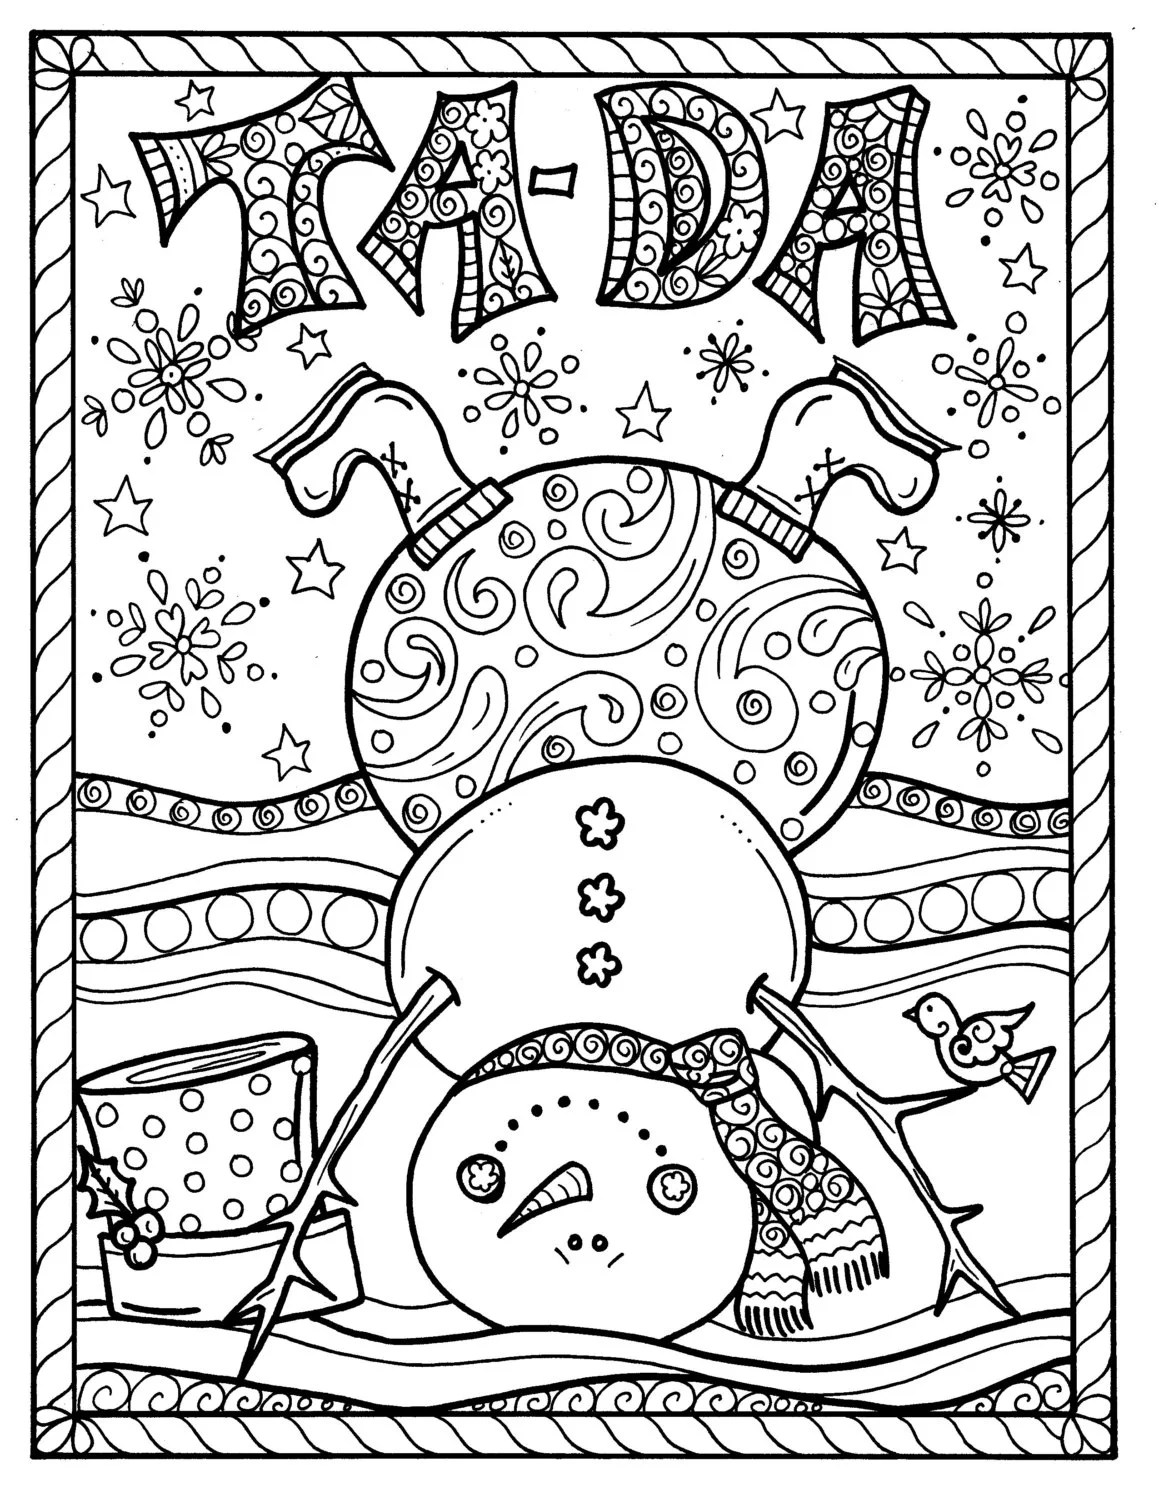 Snowman Christmas Instant Download Coloring Page Adult